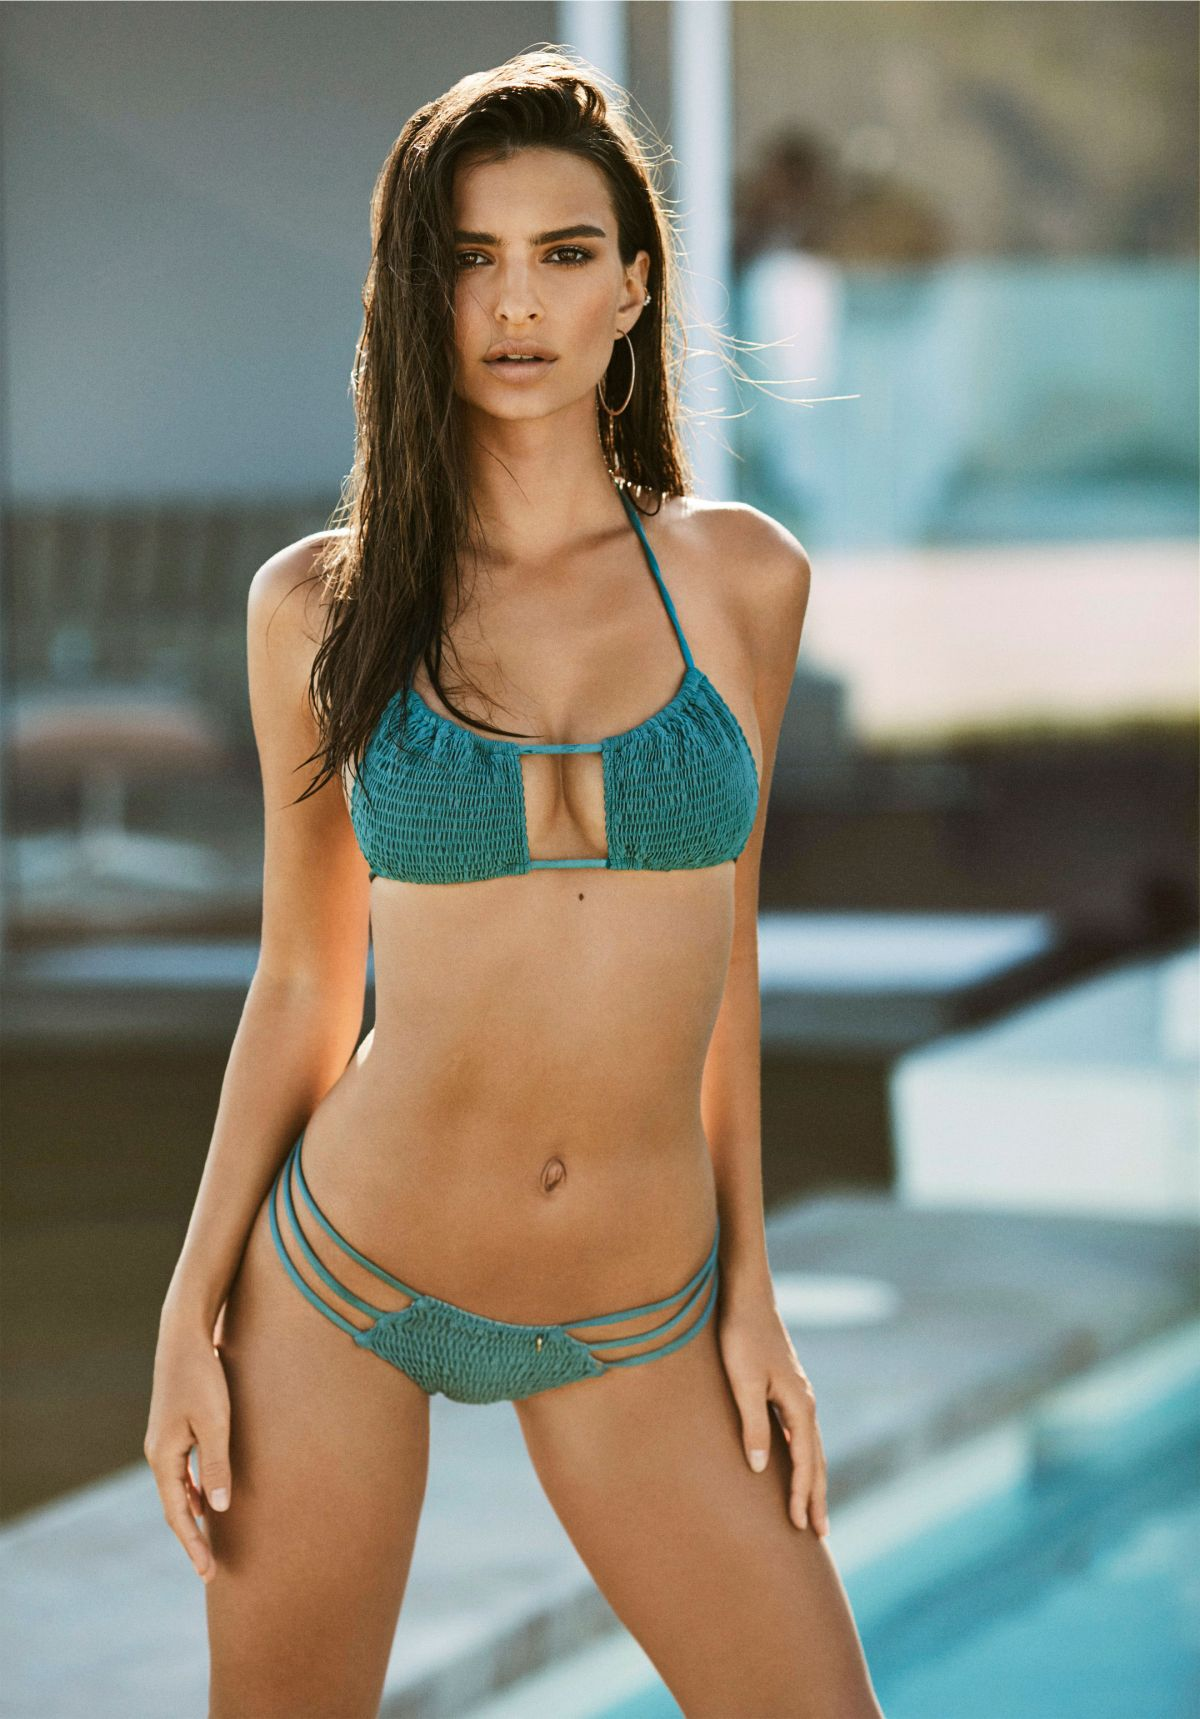 emily ratajkowski - photo #1